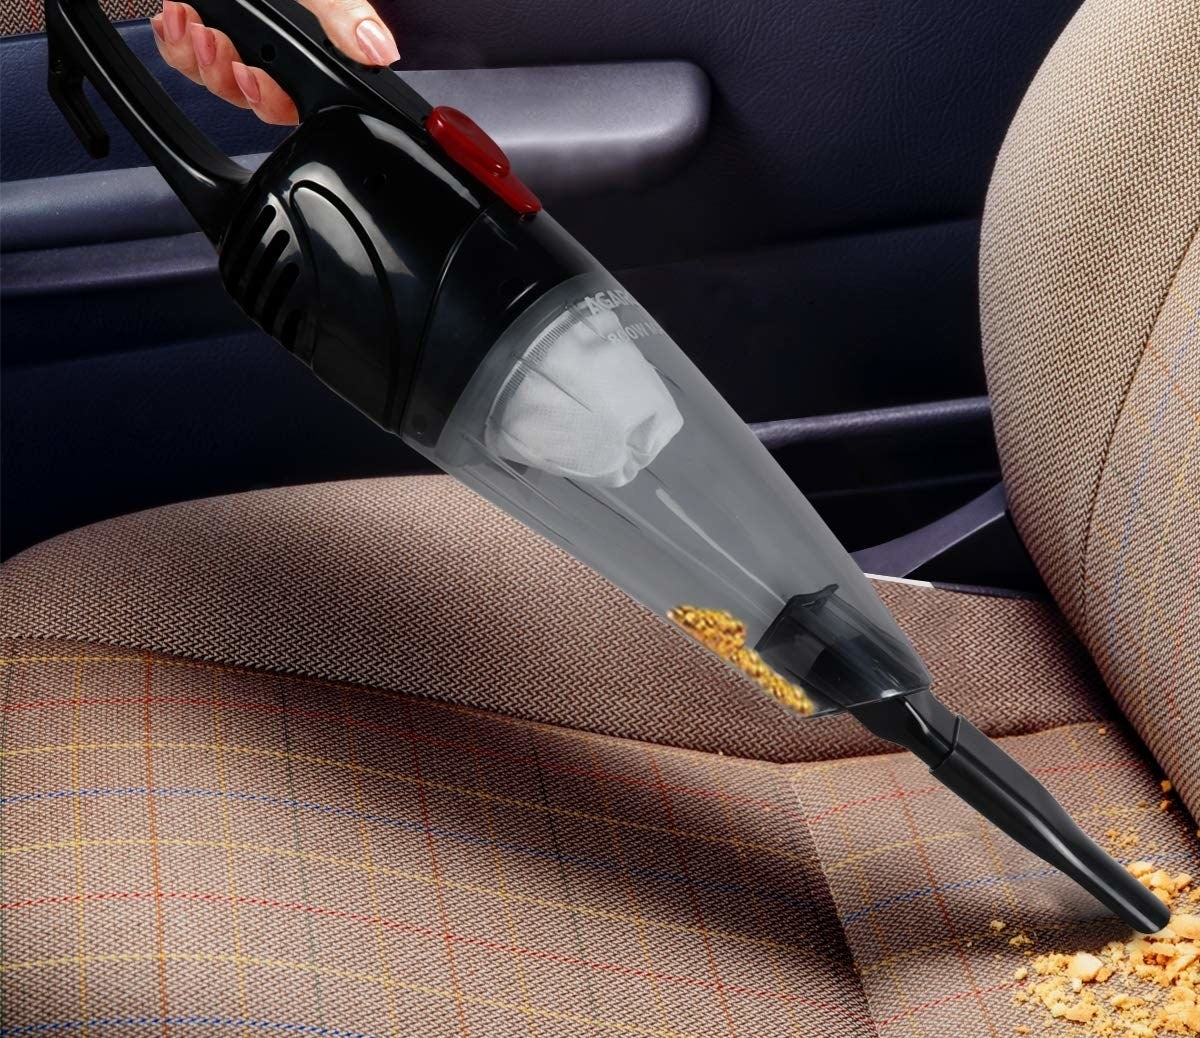 The handheld vacuum cleaner used to clean up crumbs from a car seat.